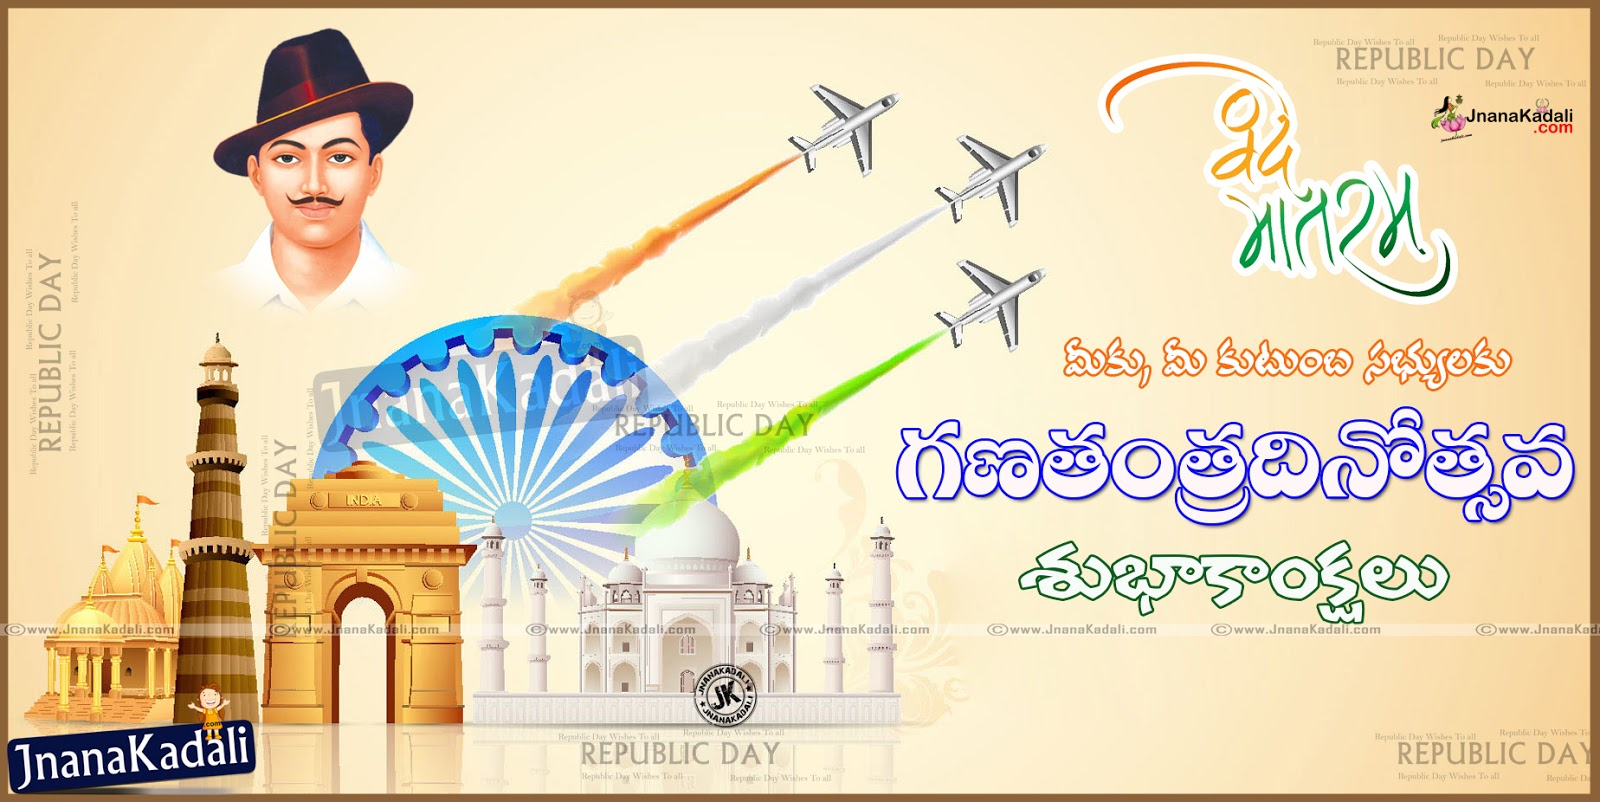 Republic Day Images With Quotes: Cool Republic Day Greetings Wishes Hd Wallpapers In Telugu